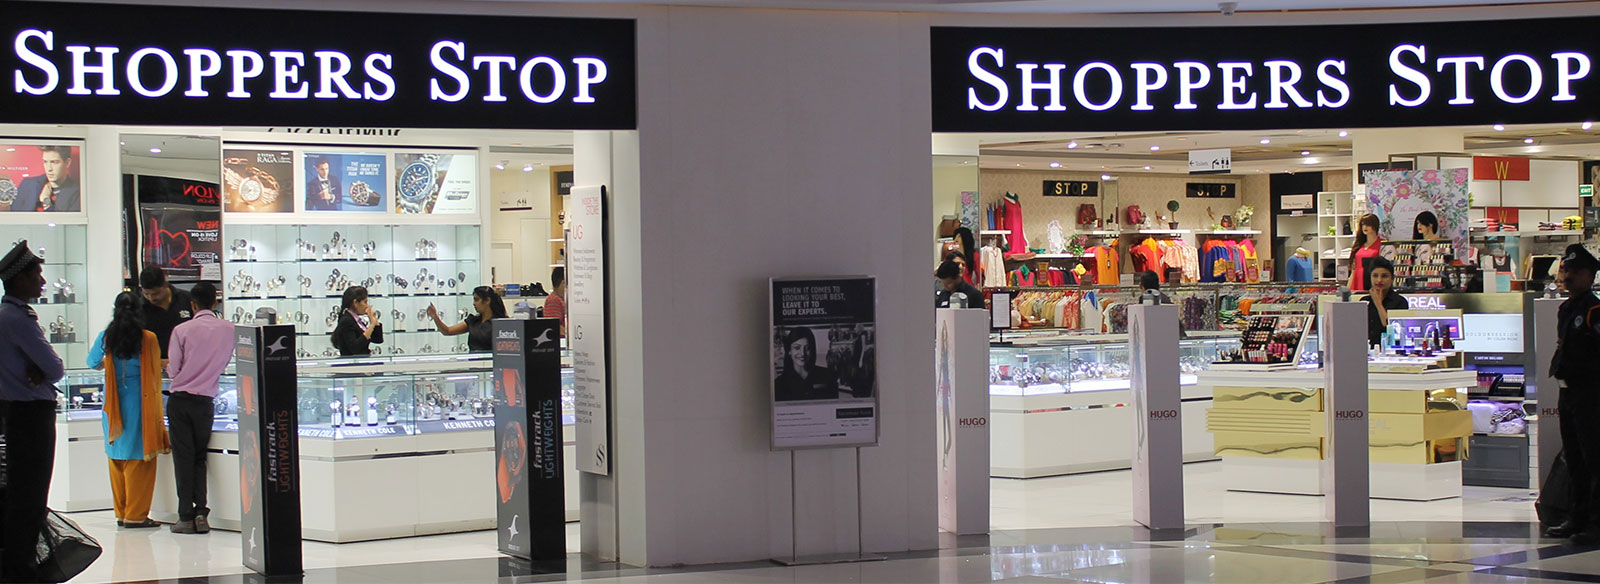 SHOPPERS-STOP-3